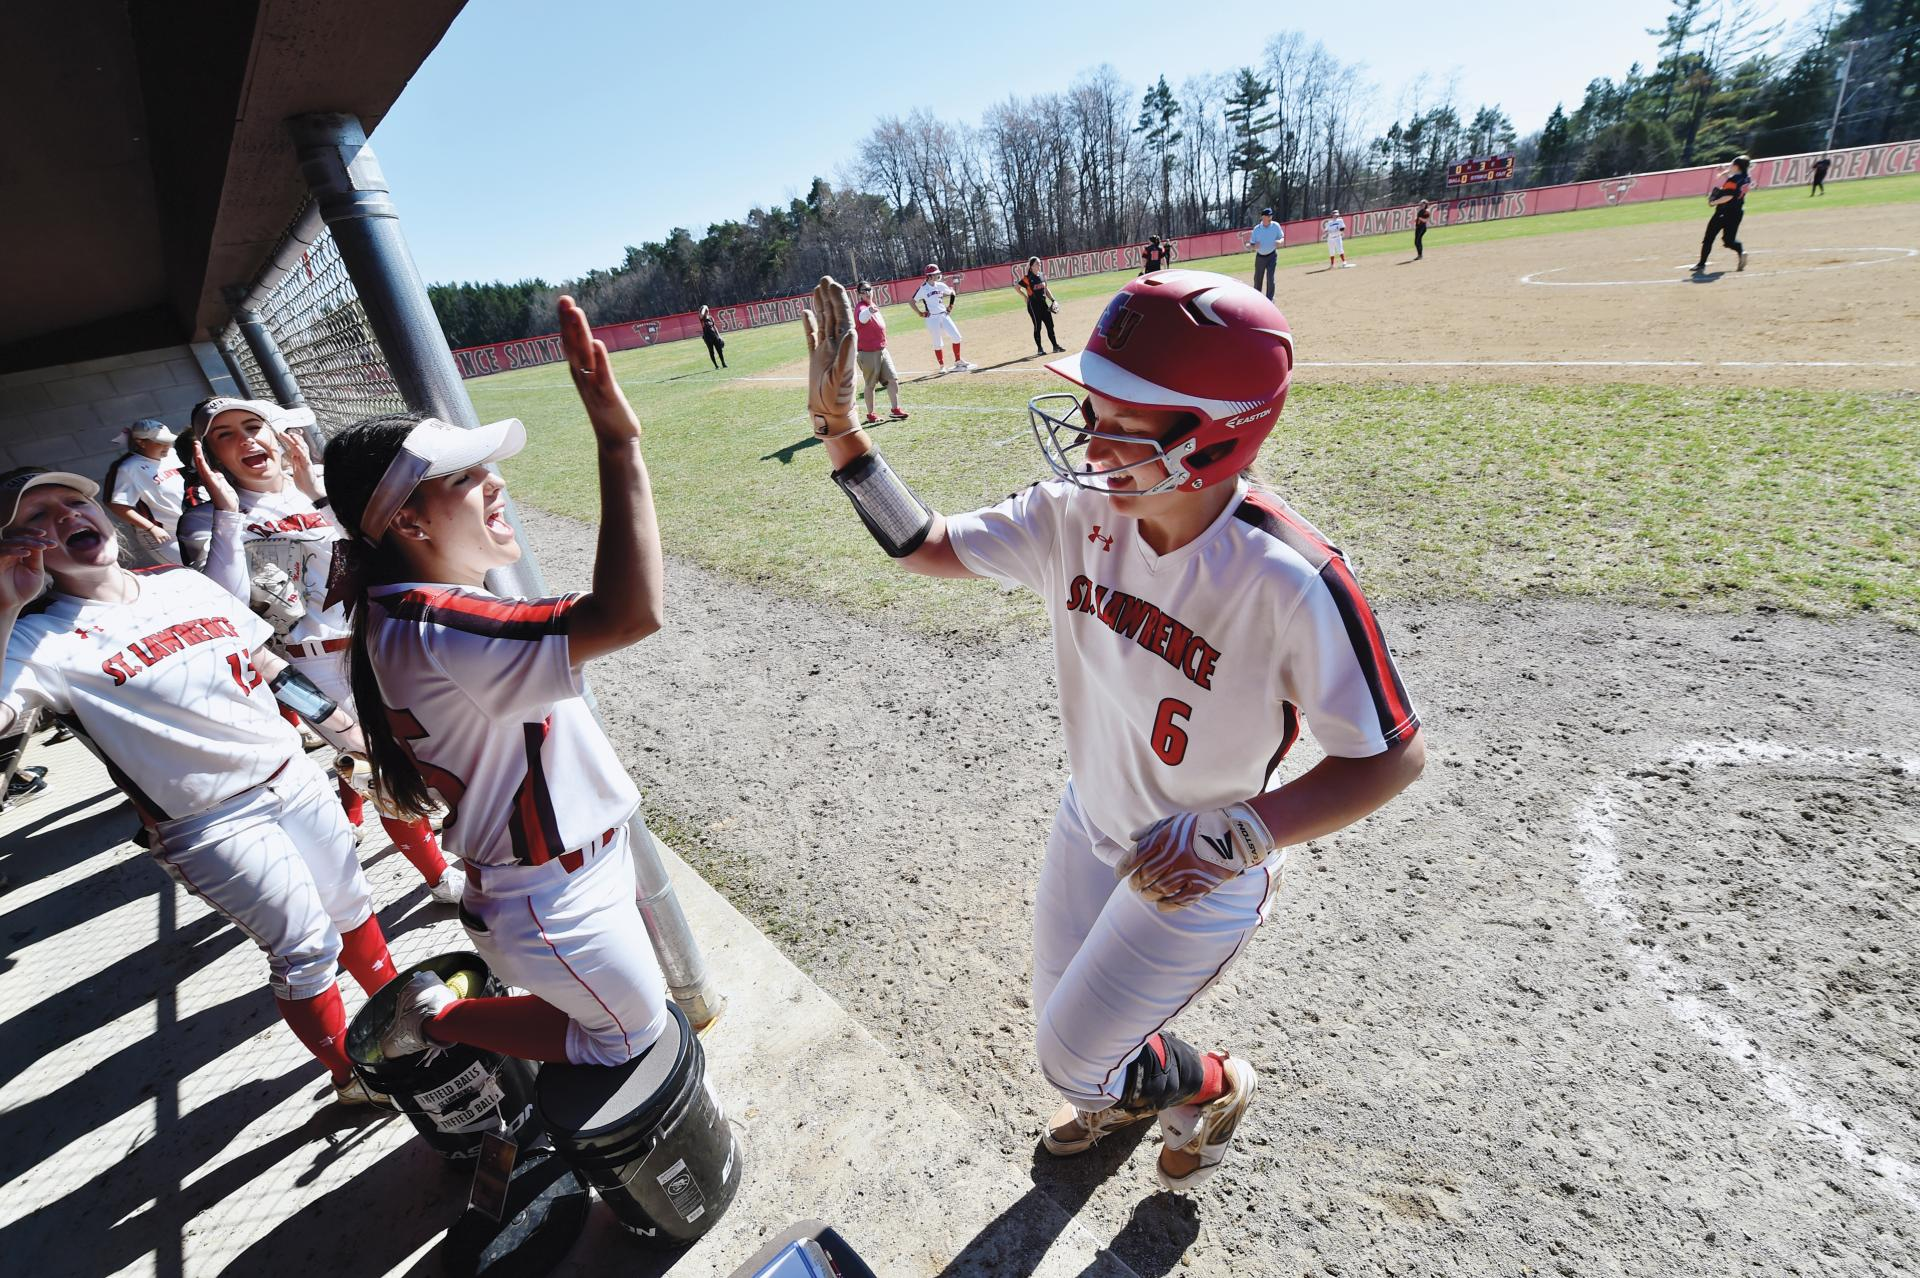 Elle Gray '19 high-fiving a teammate in the dugout during a game